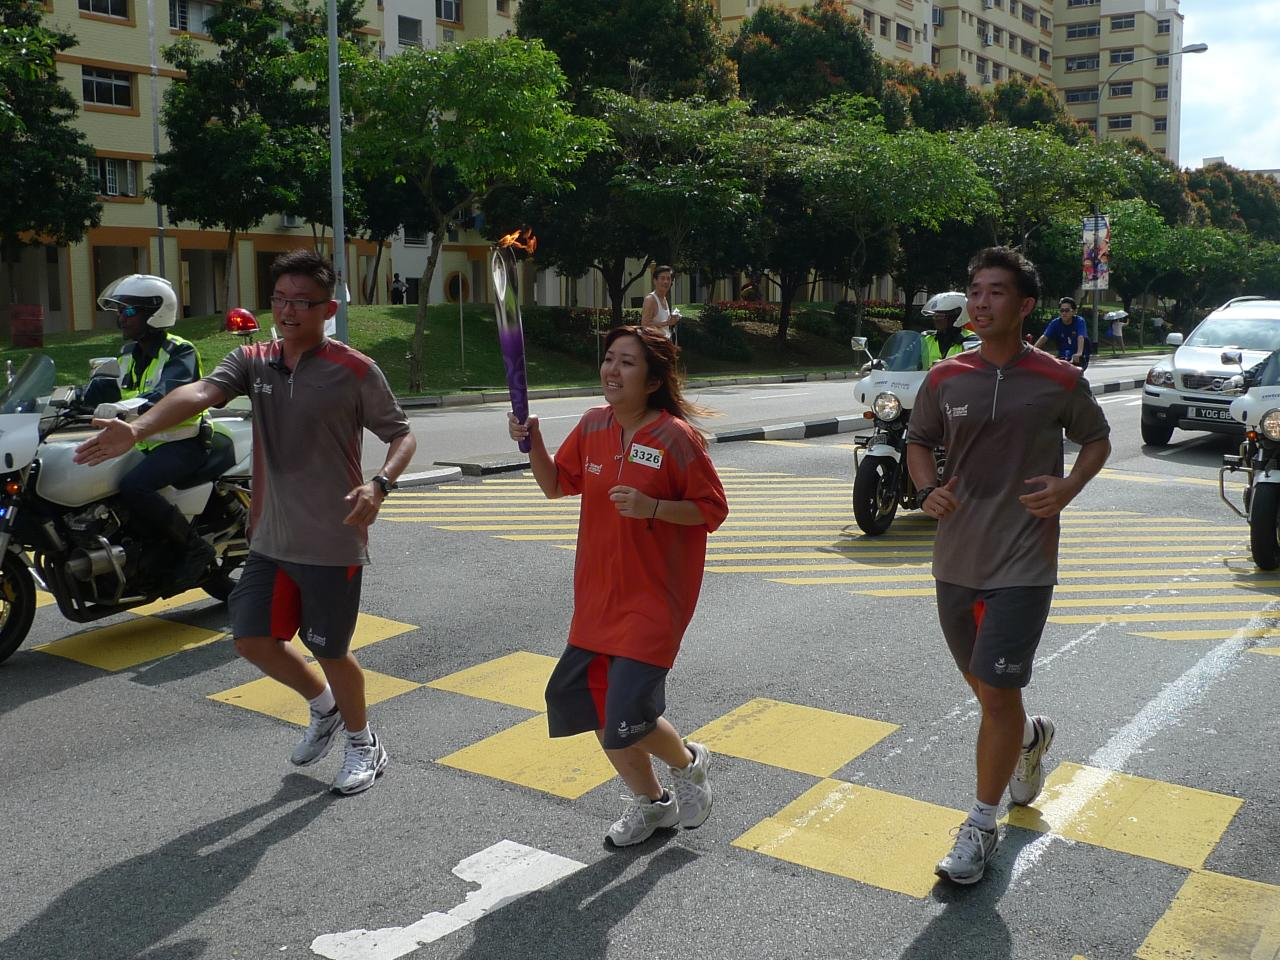 Olympic torch relay freebies